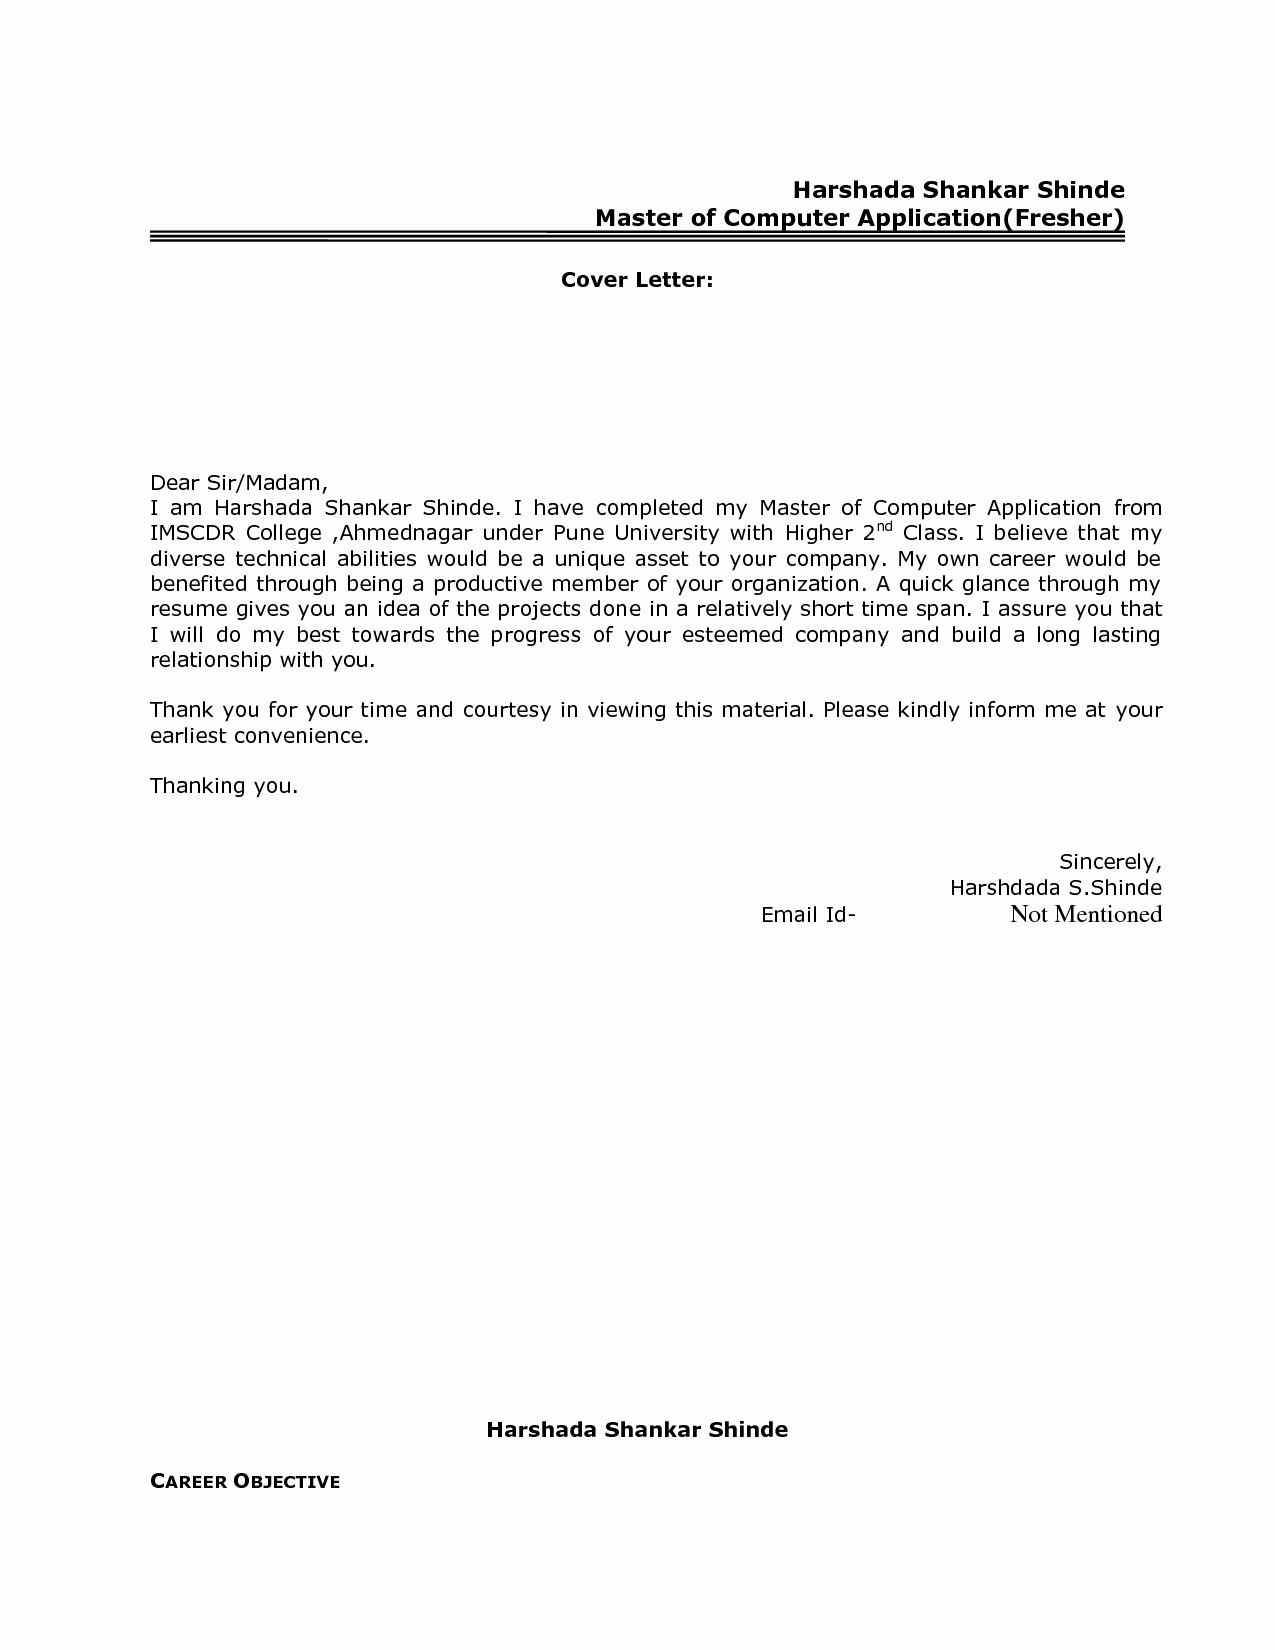 Email Cover Letter for Resume Elegant Best Resume Cover Letter format for Freshers Govt Jobcover